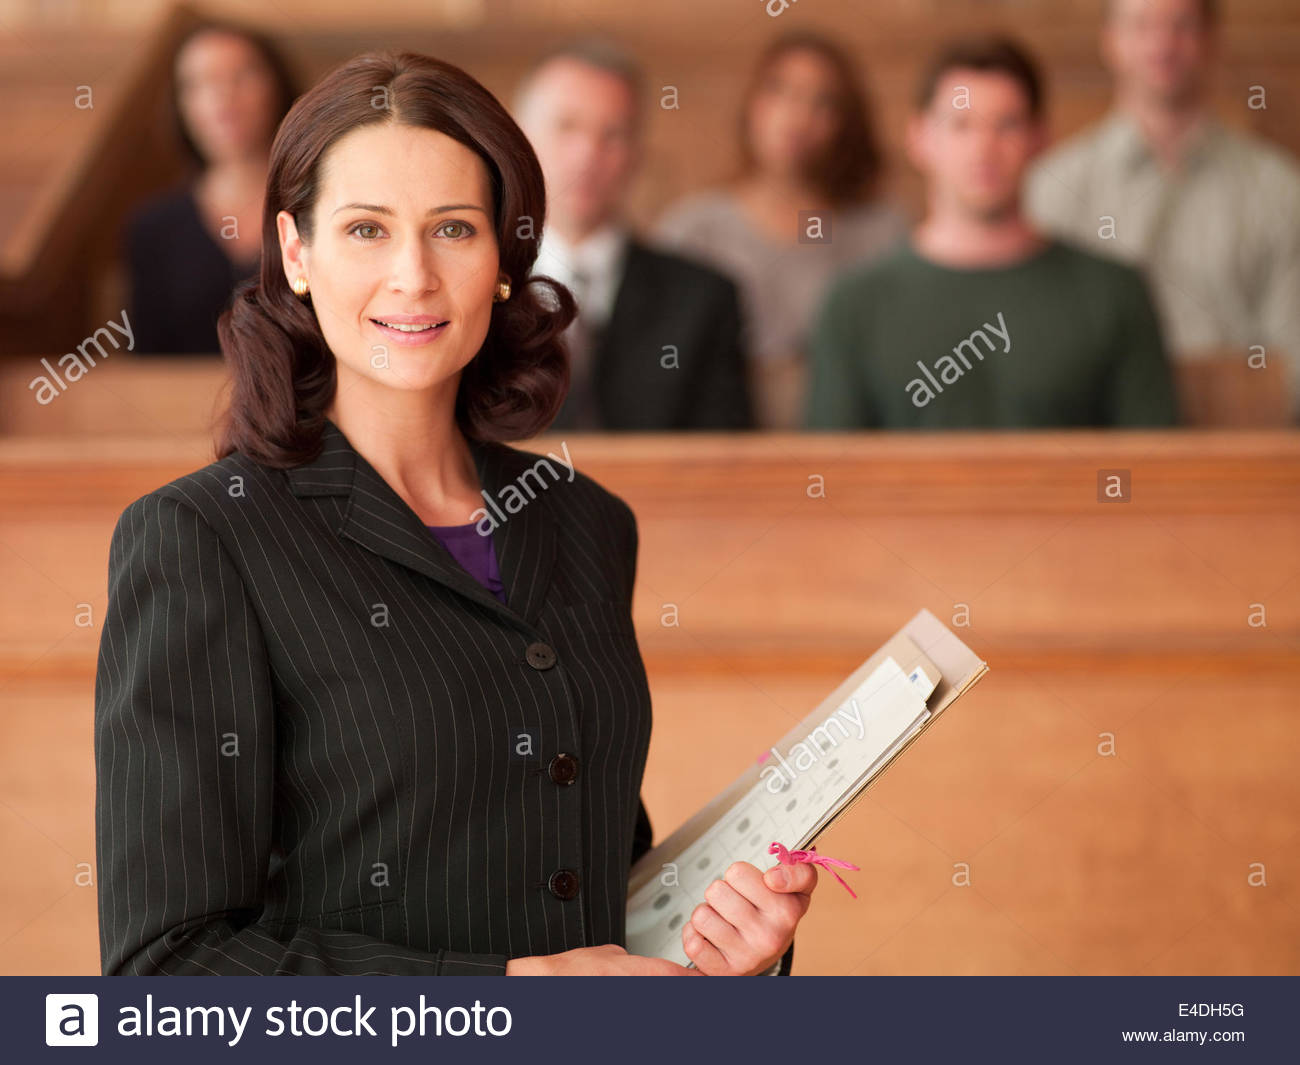 Smiling lawyer holding file in courtroom - Stock Image